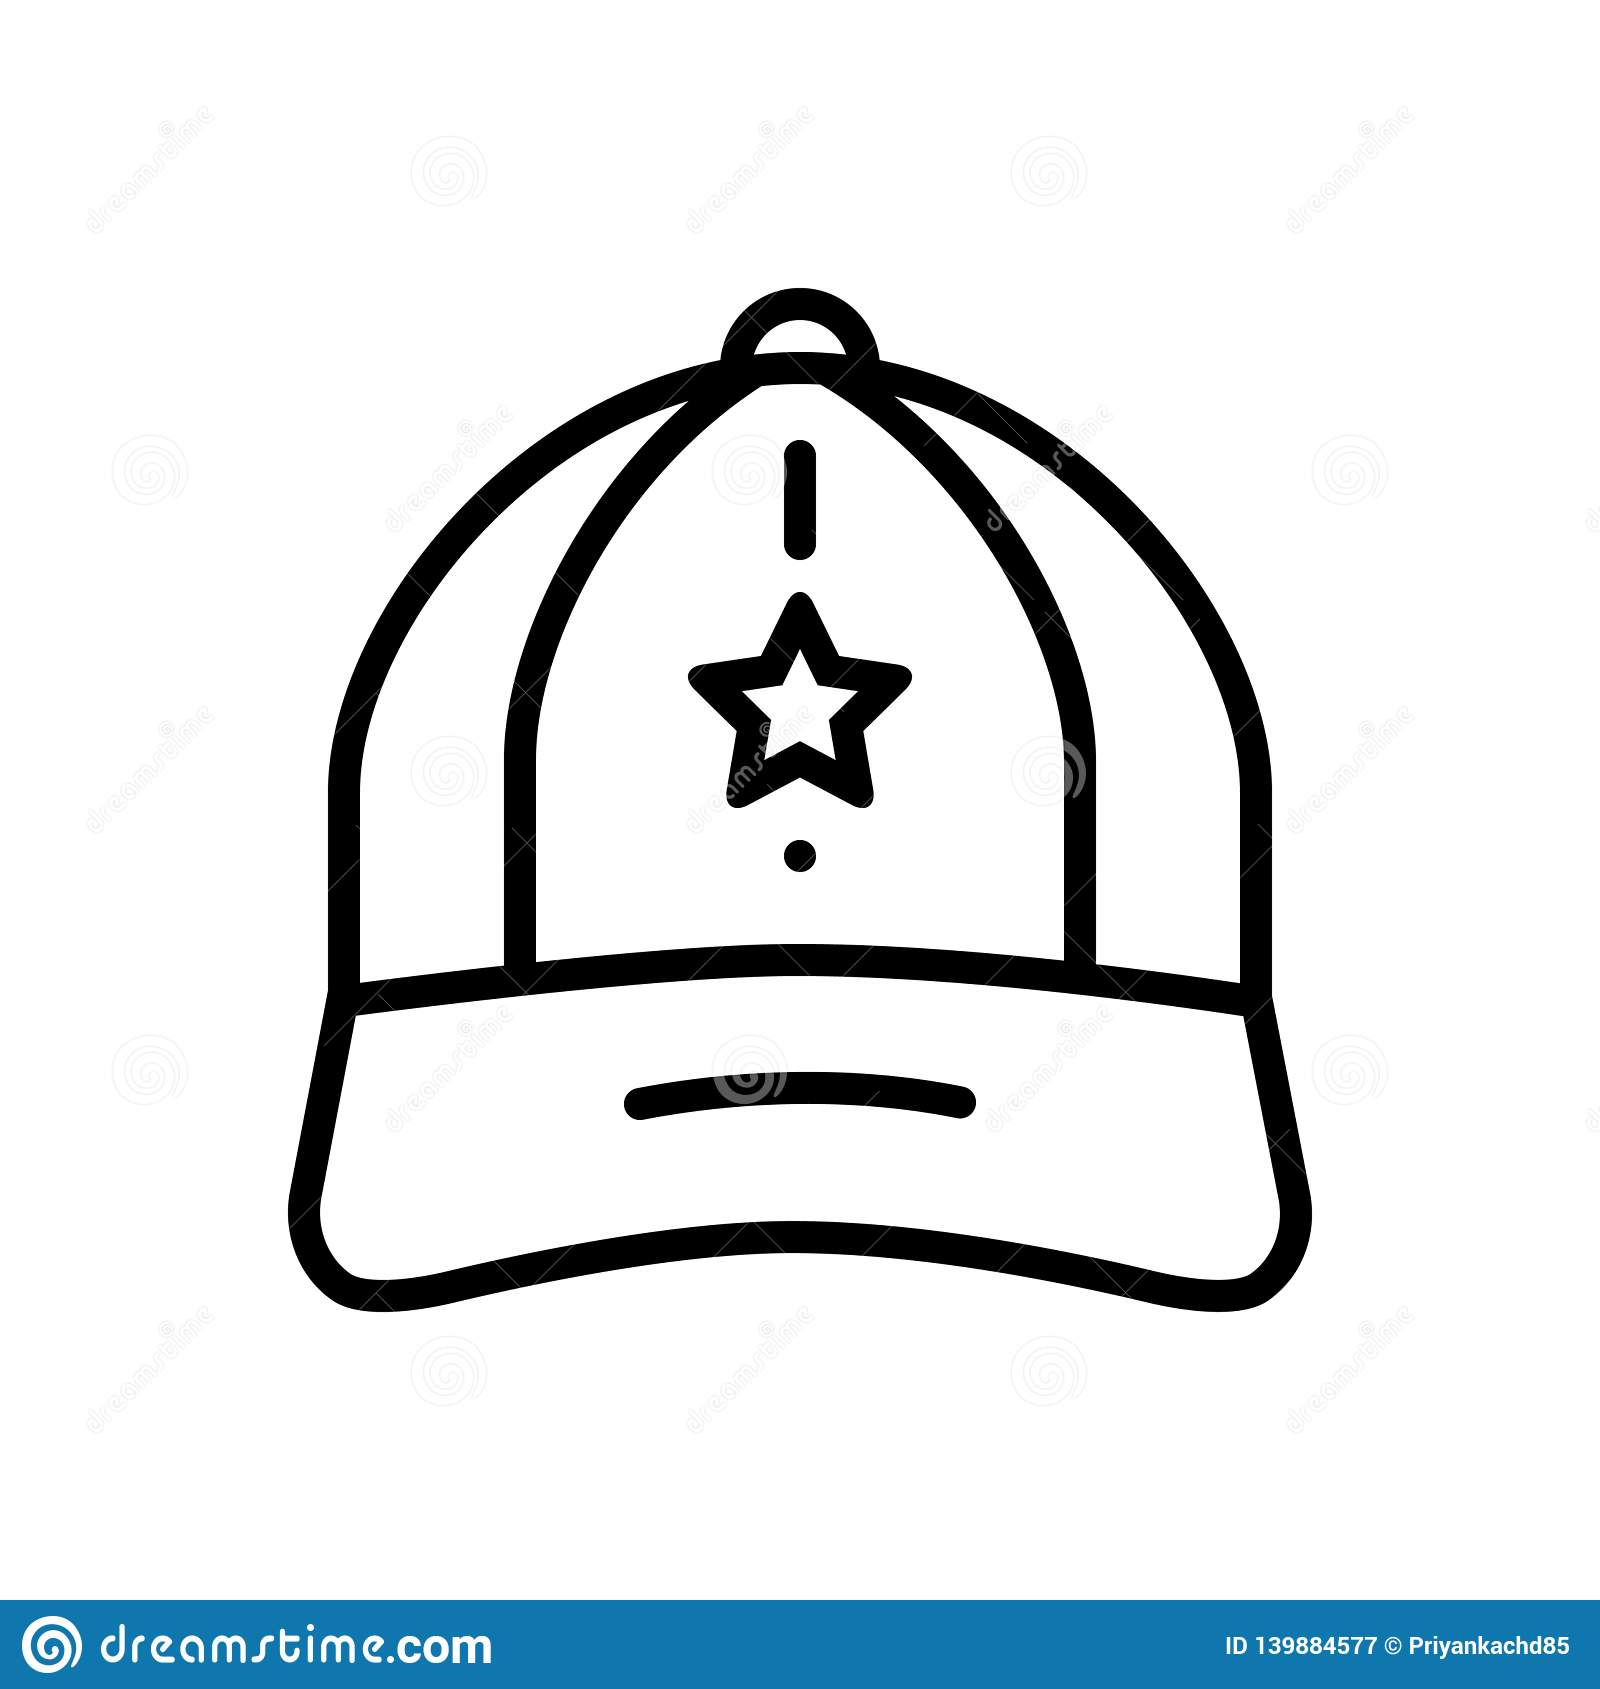 Black line icon for Cap, hat and worker